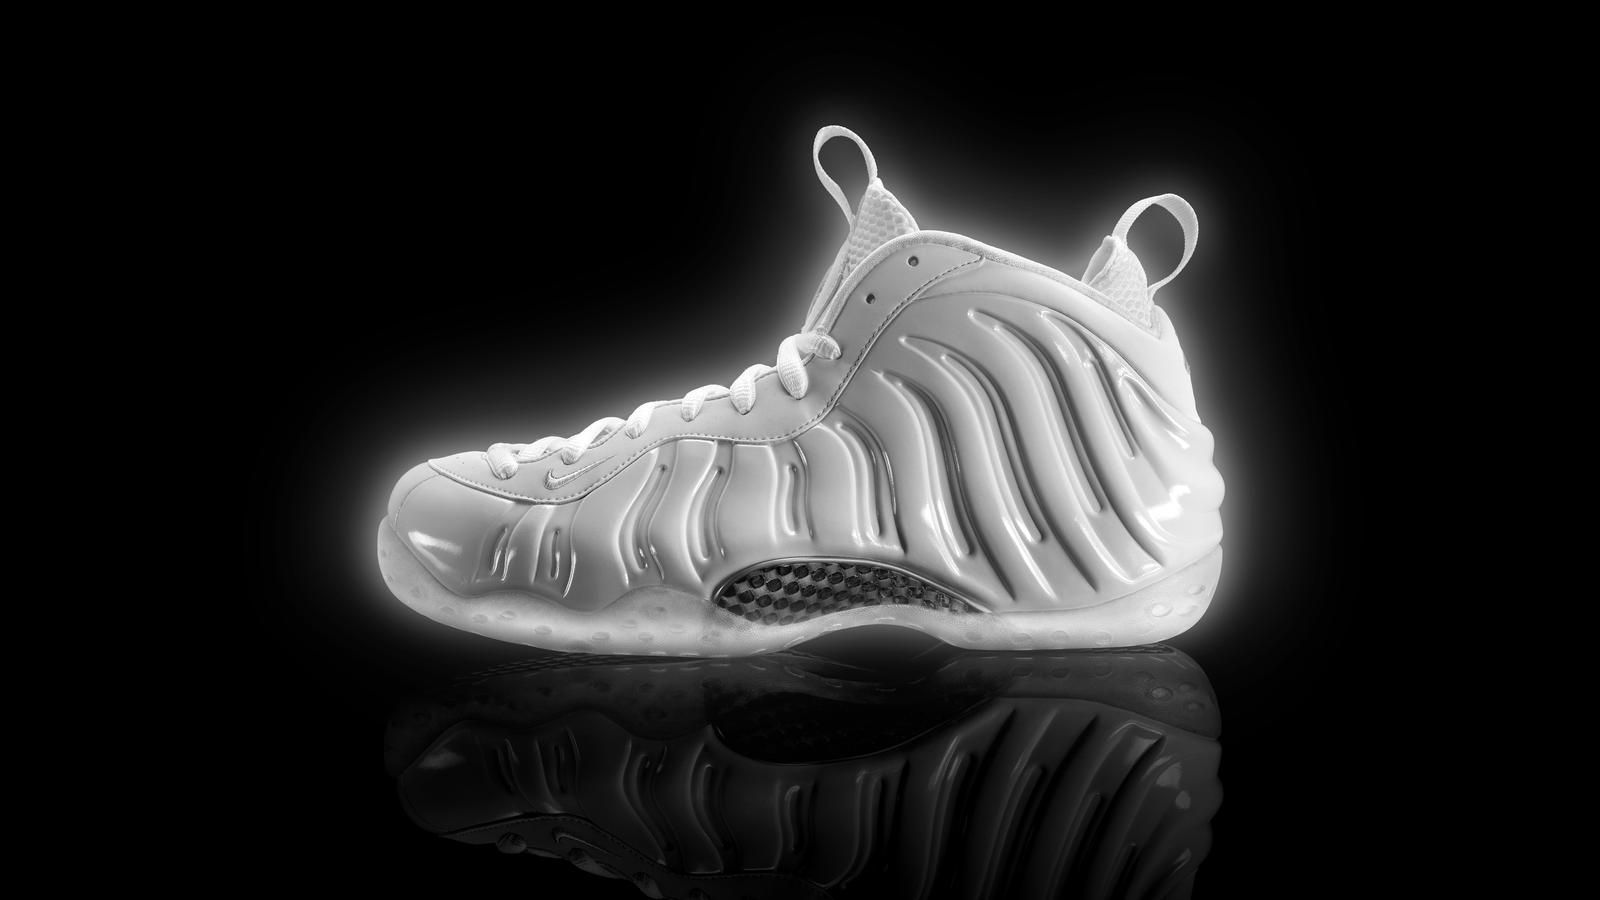 4985213d79132 Pure Radiance  White Nike Foamposite One Is Cleanest Yet - Nike News